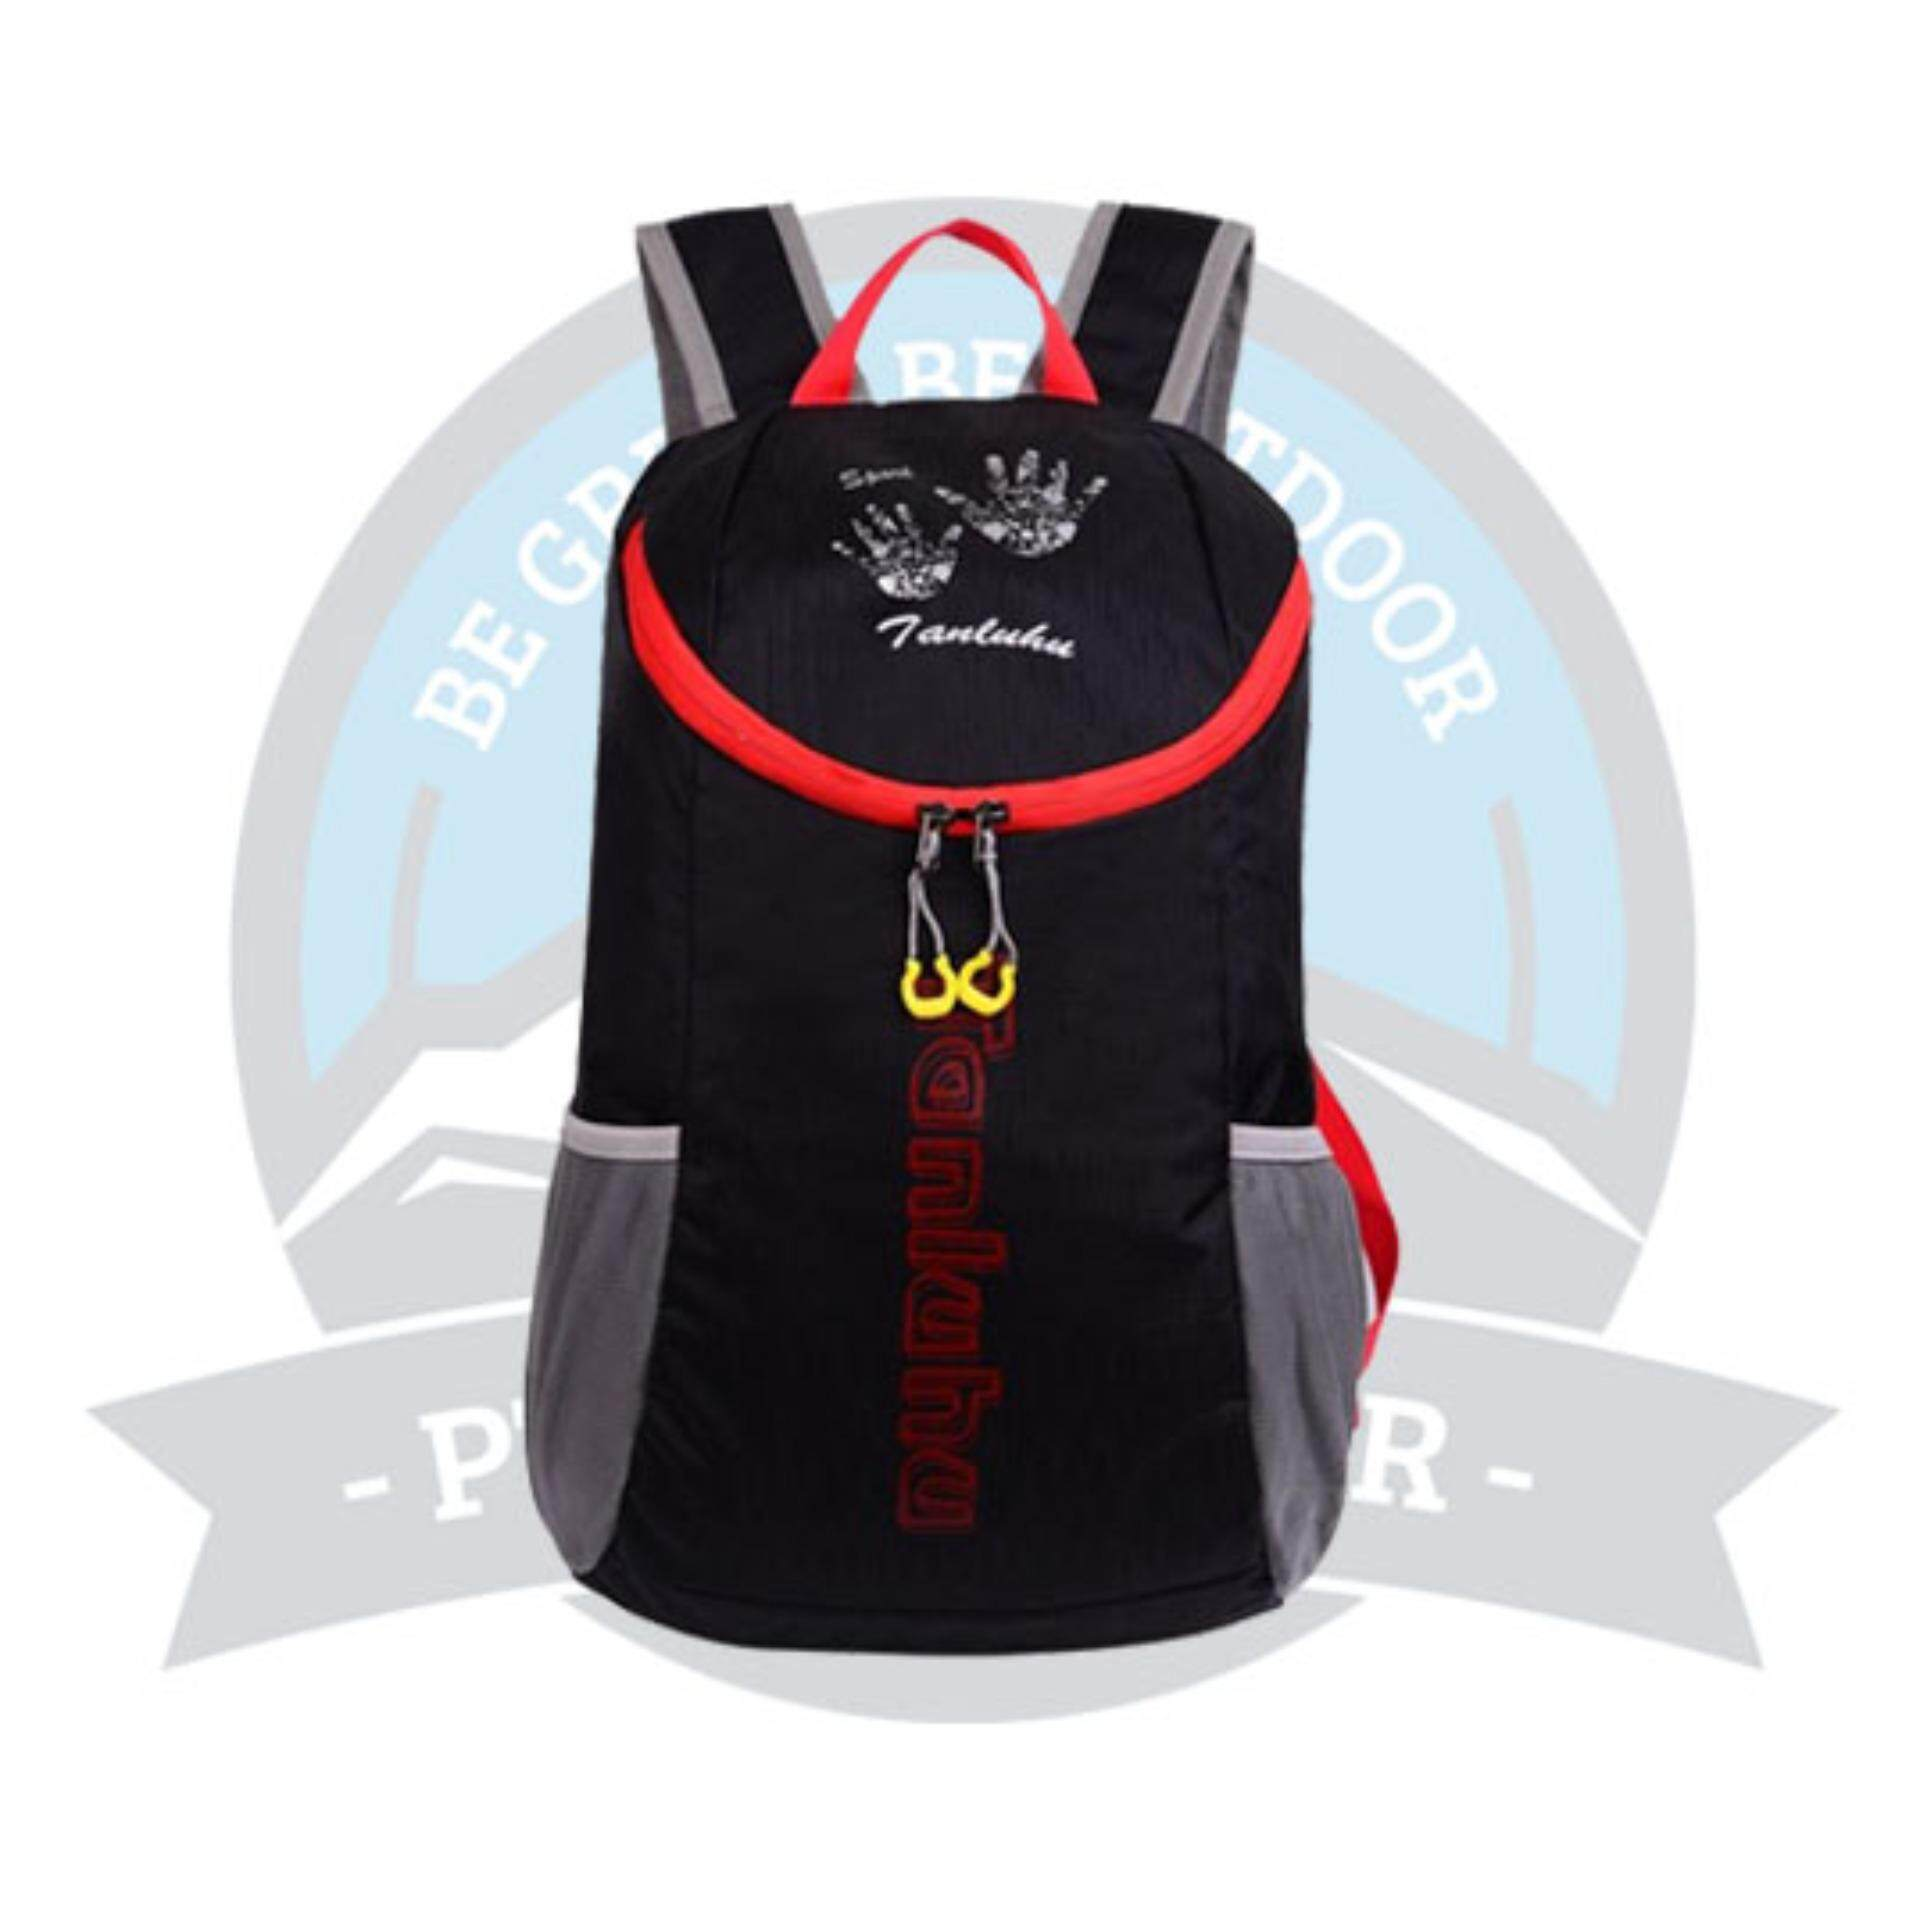 [READY STOCK] Tanluhu 25L Water Resitant Foldable Outdoor Bagpack - Black